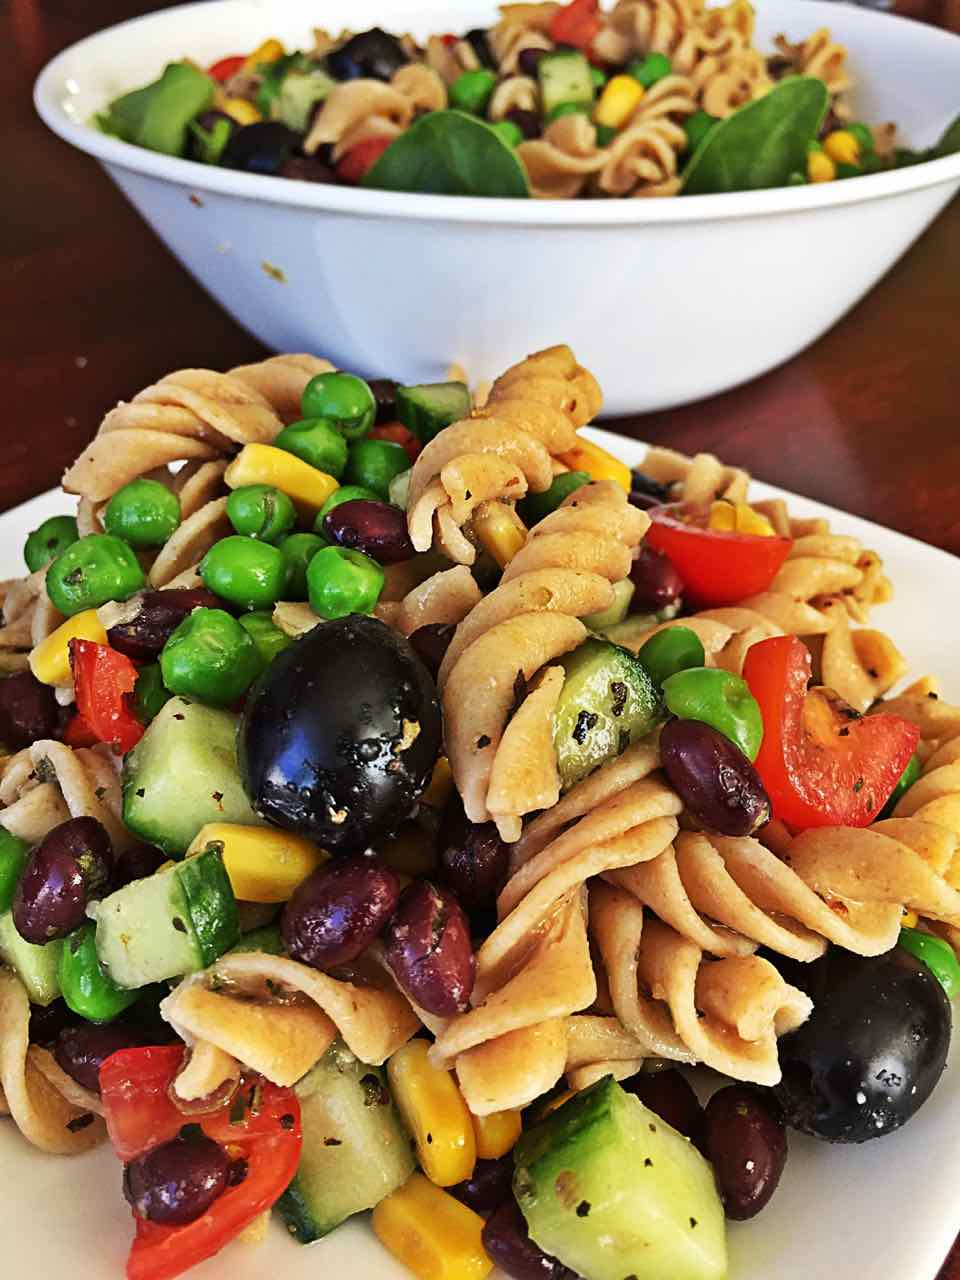 Vegan Healthy Pasta Salad Fat-free Italian